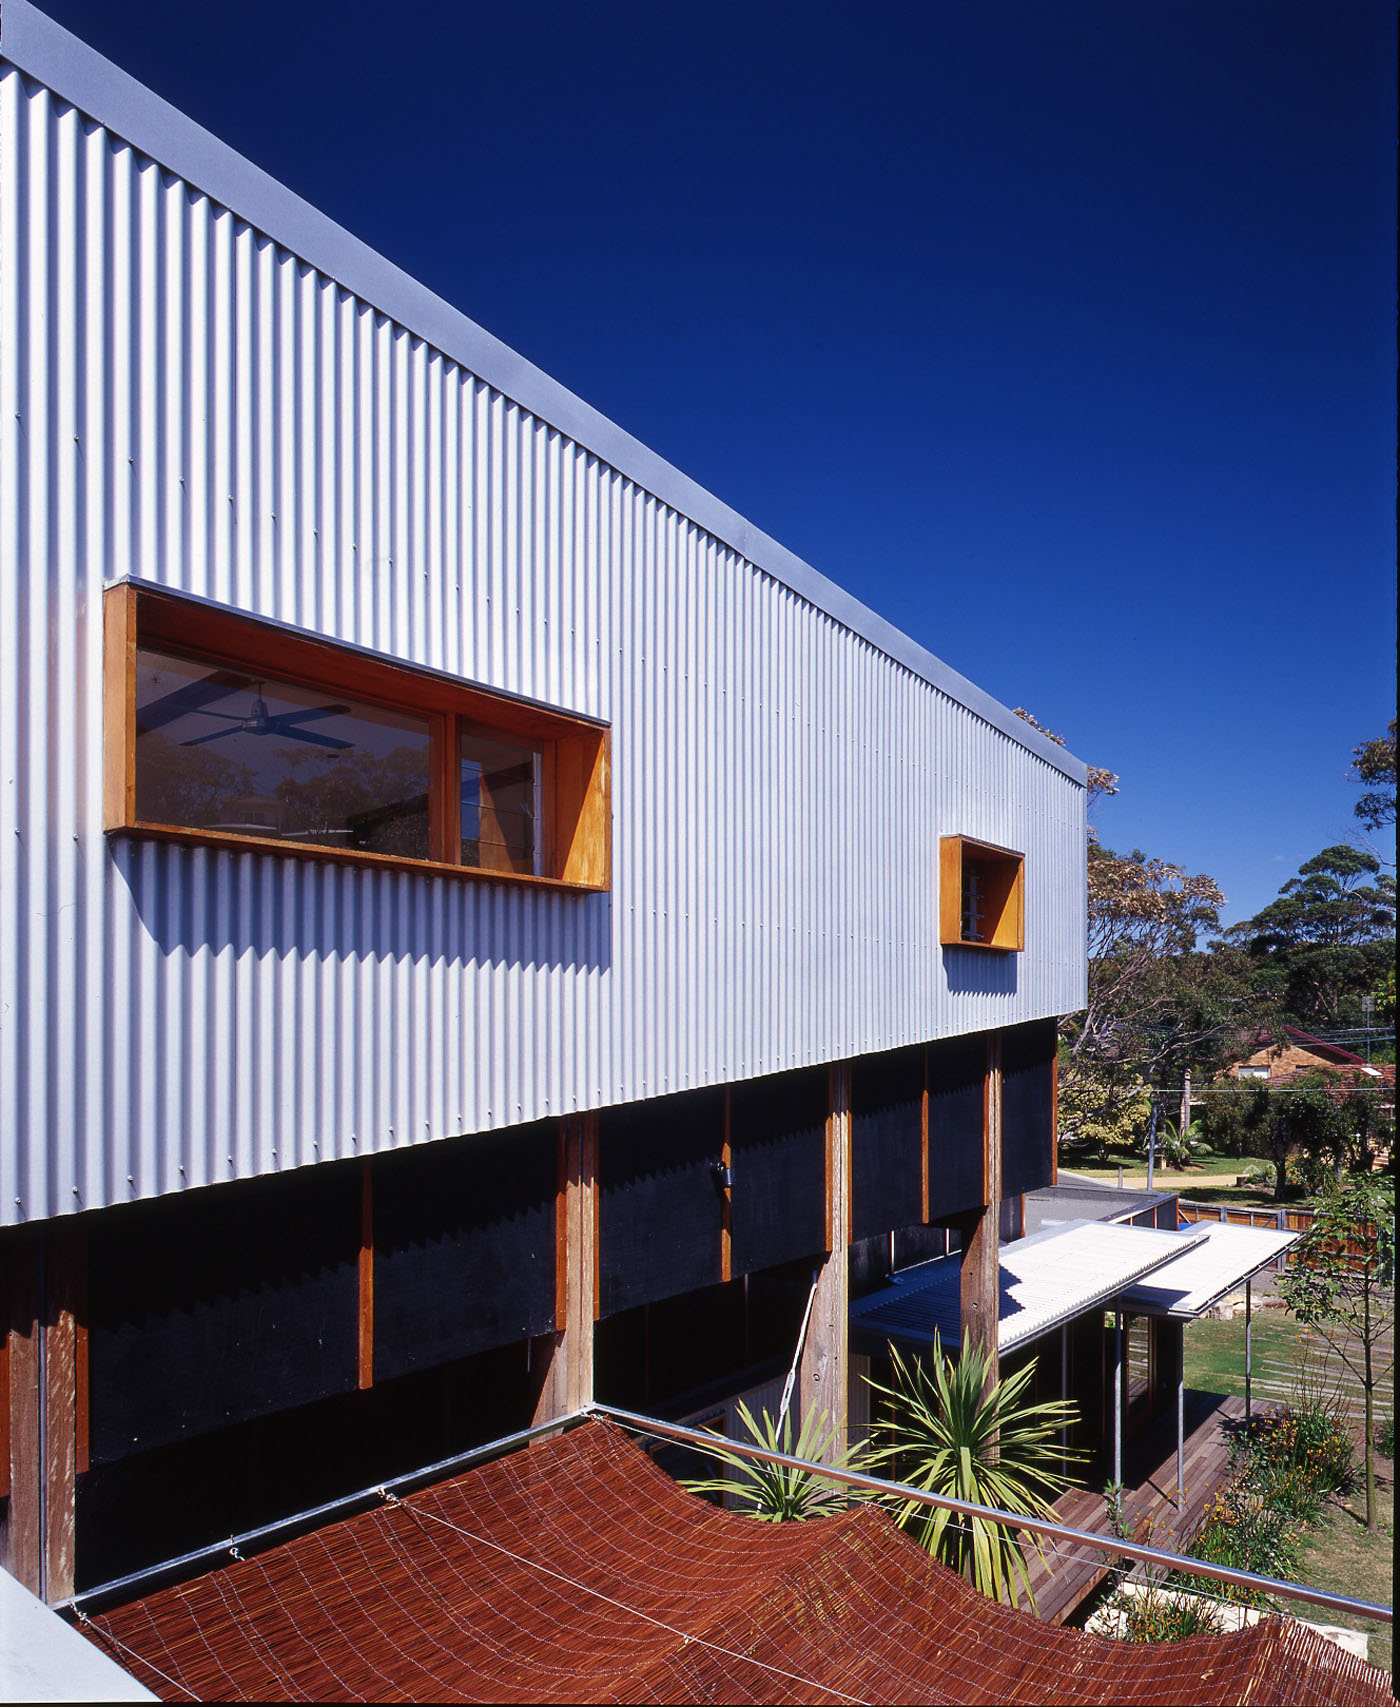 Bundeena Beach House by Sydney award winning residential architecture firm Sam Crawford Architects. View from first floor to external corrugated steel cladding and timber framed windows.